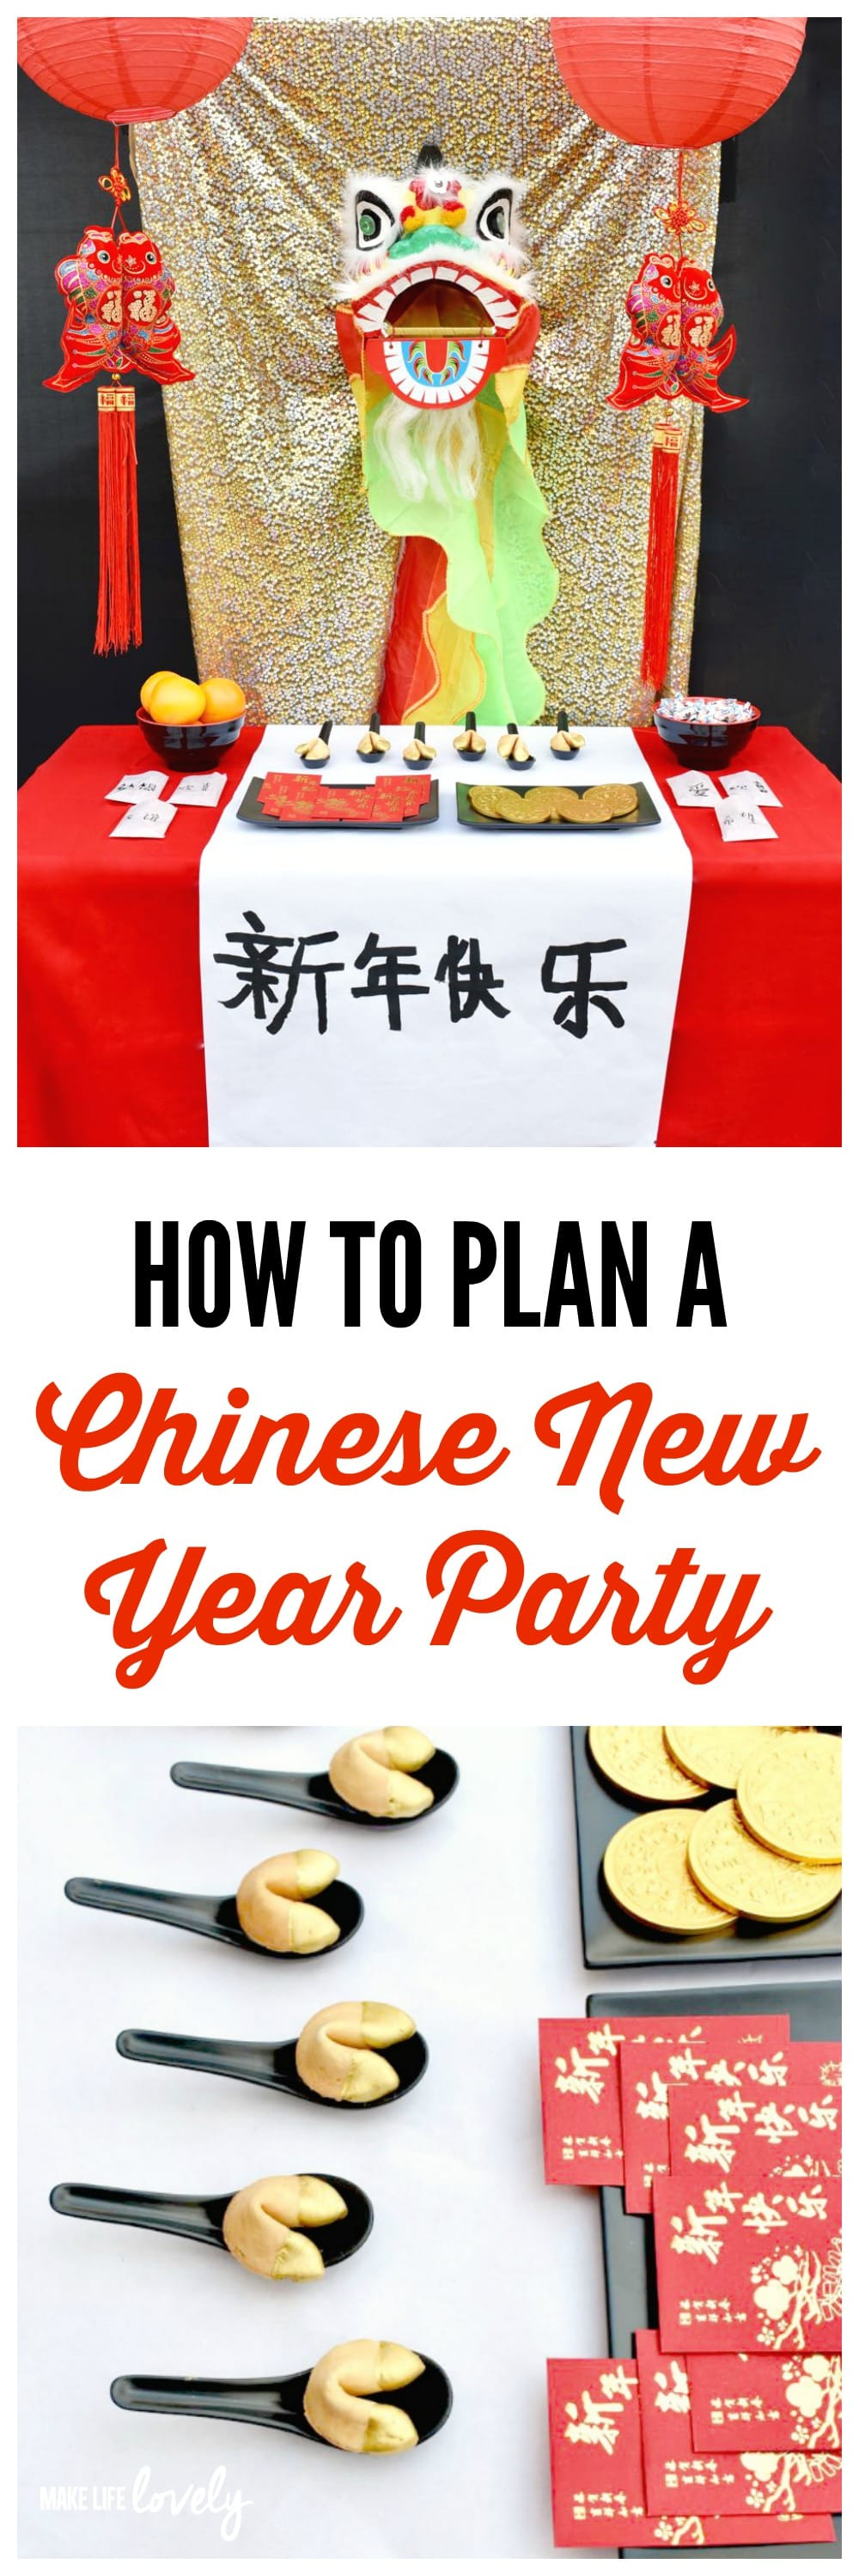 How To Plan A Chinese New Year Party Lots Of